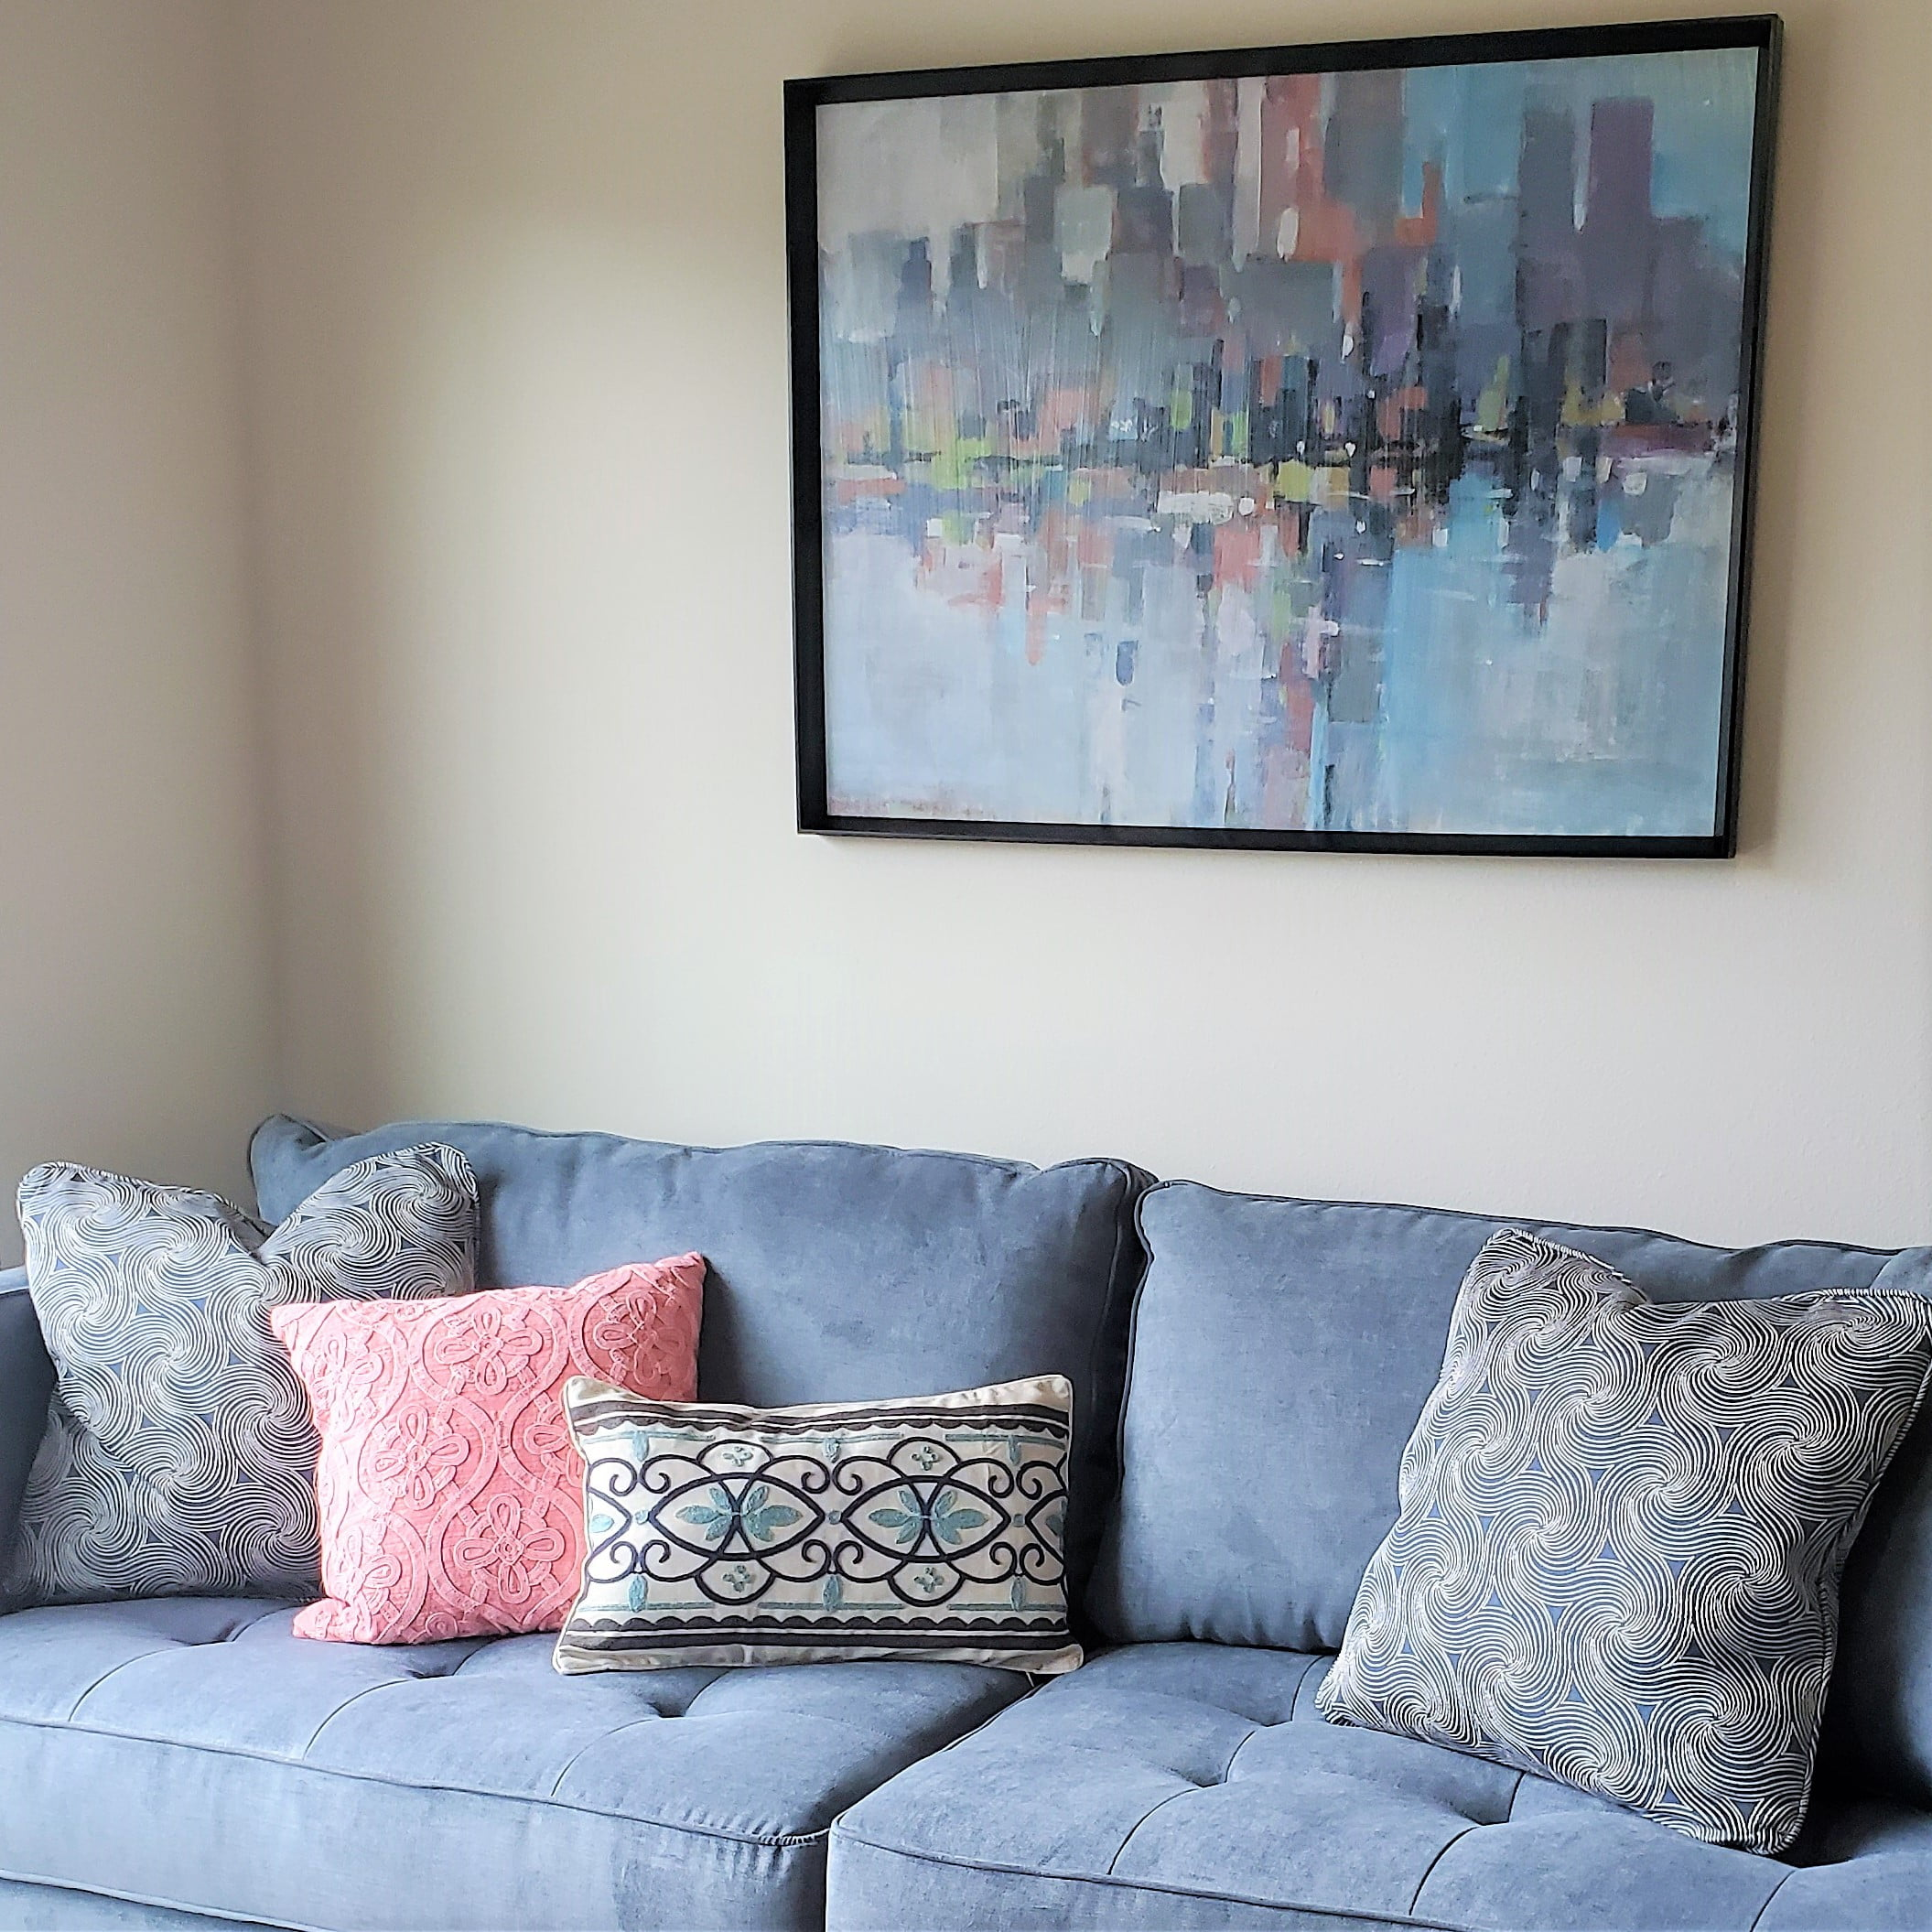 Large scale sofa in a small apartment